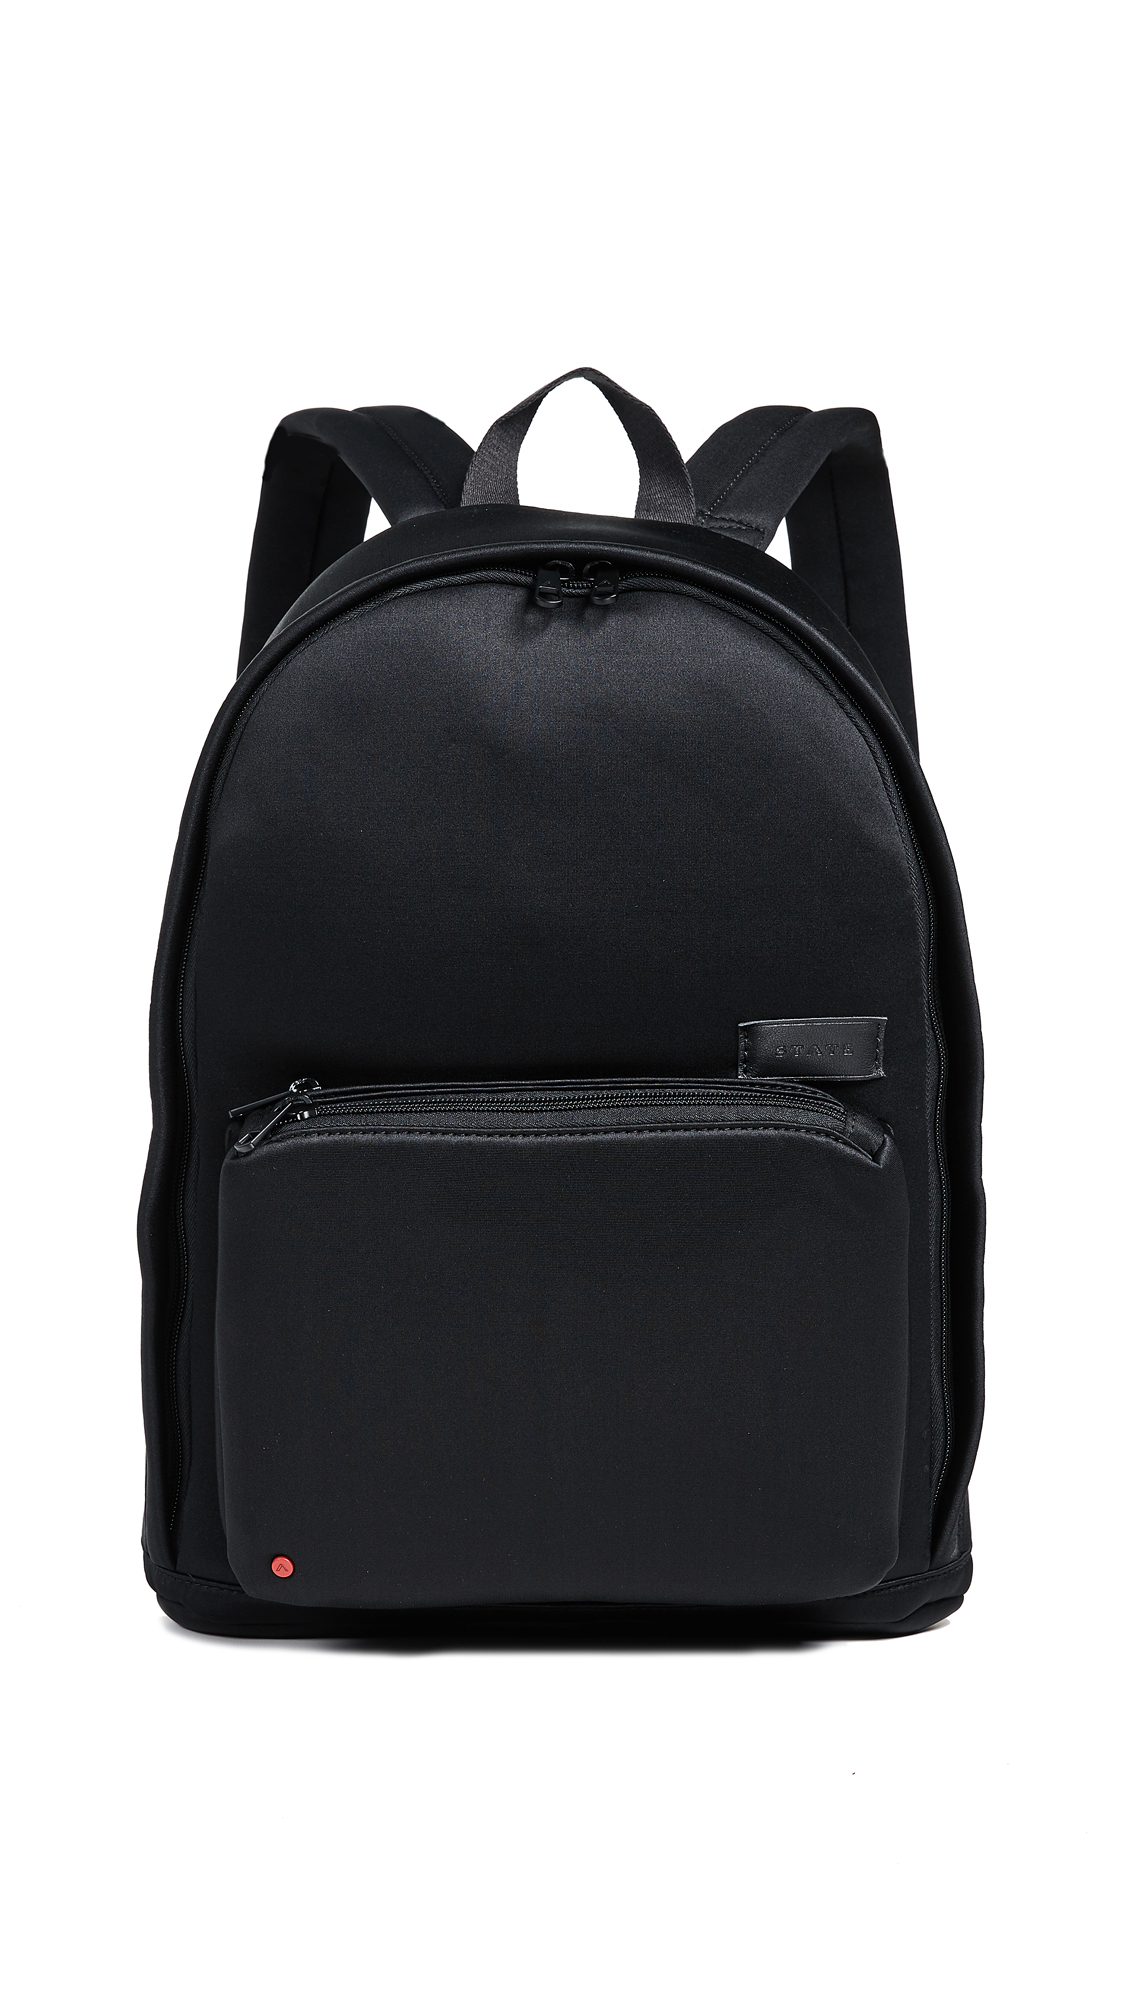 Neoprene Lorimer Backpack, Black